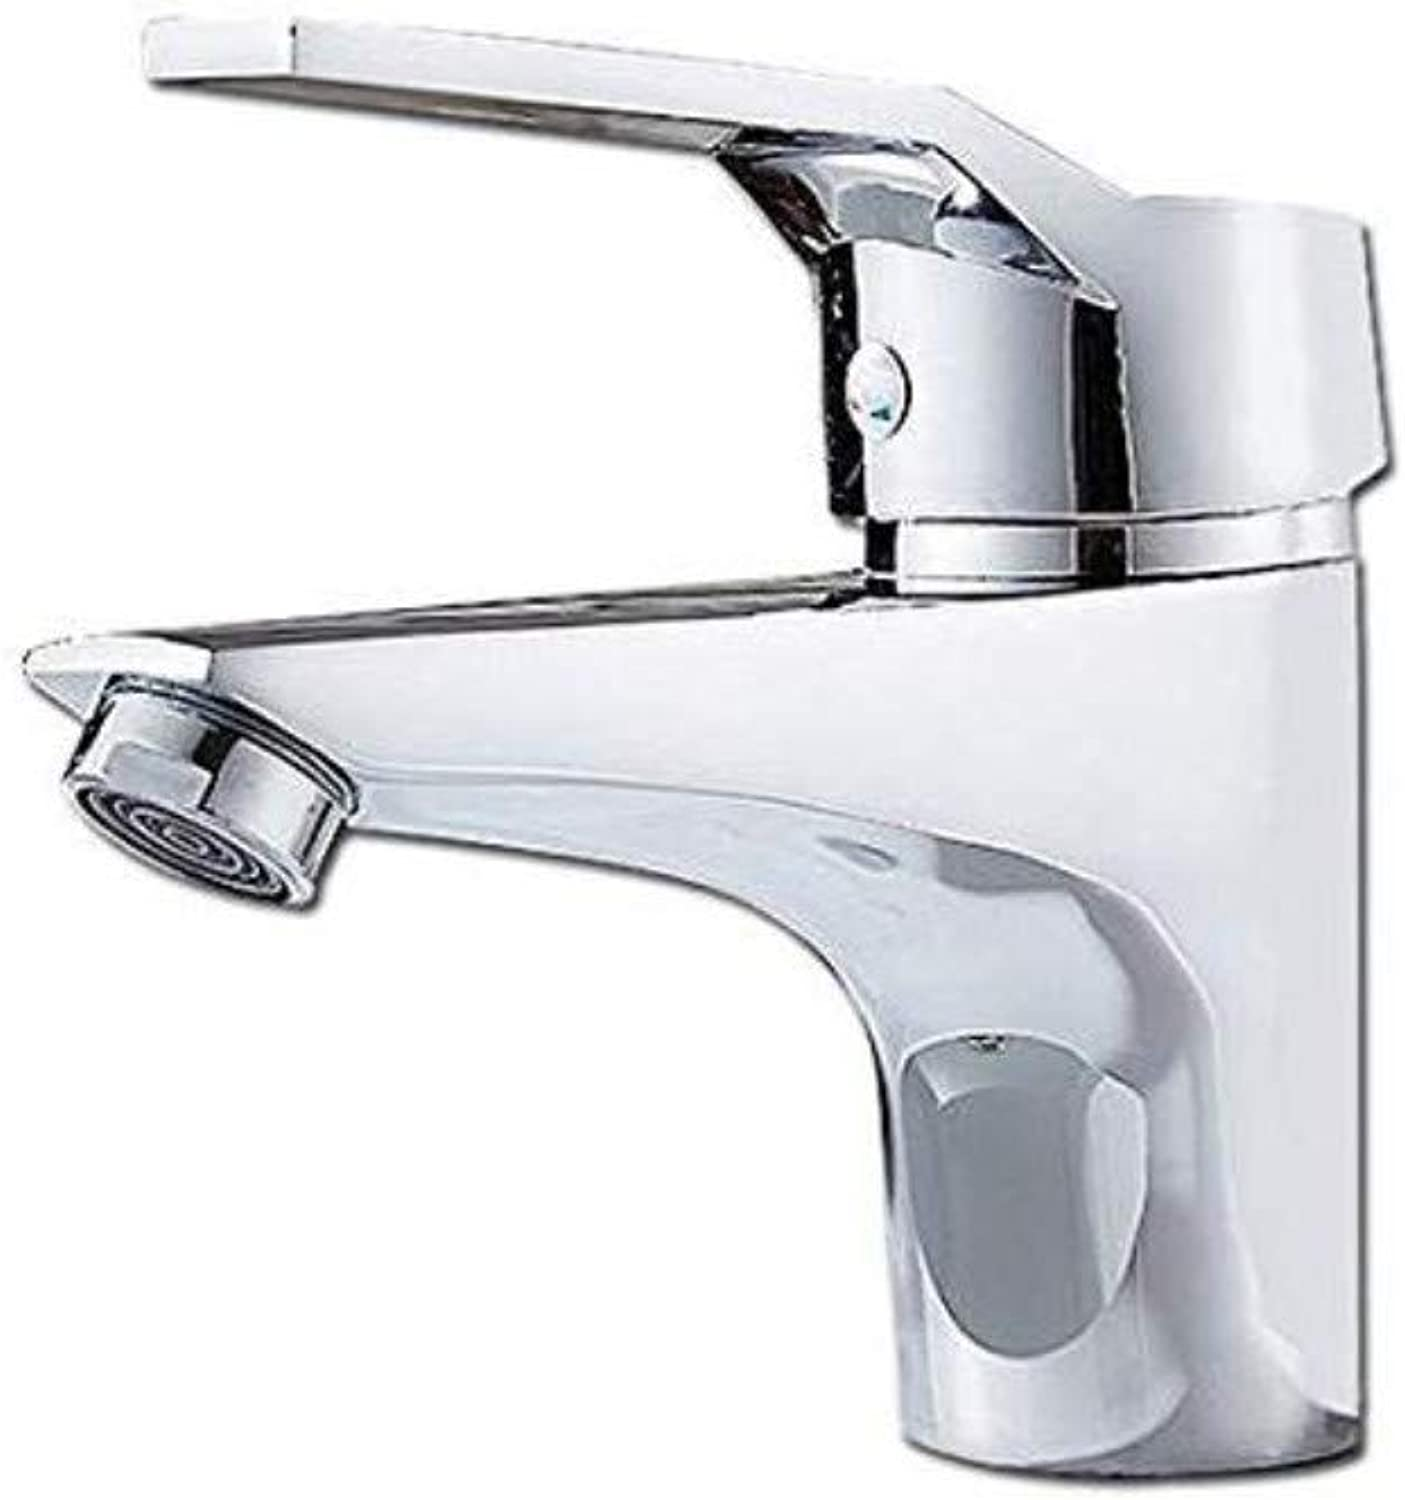 Modern Double Basin Sink Hot and Cold Water Faucet Tap Mixer Chrome Cold and Hot Water Sink Faucet